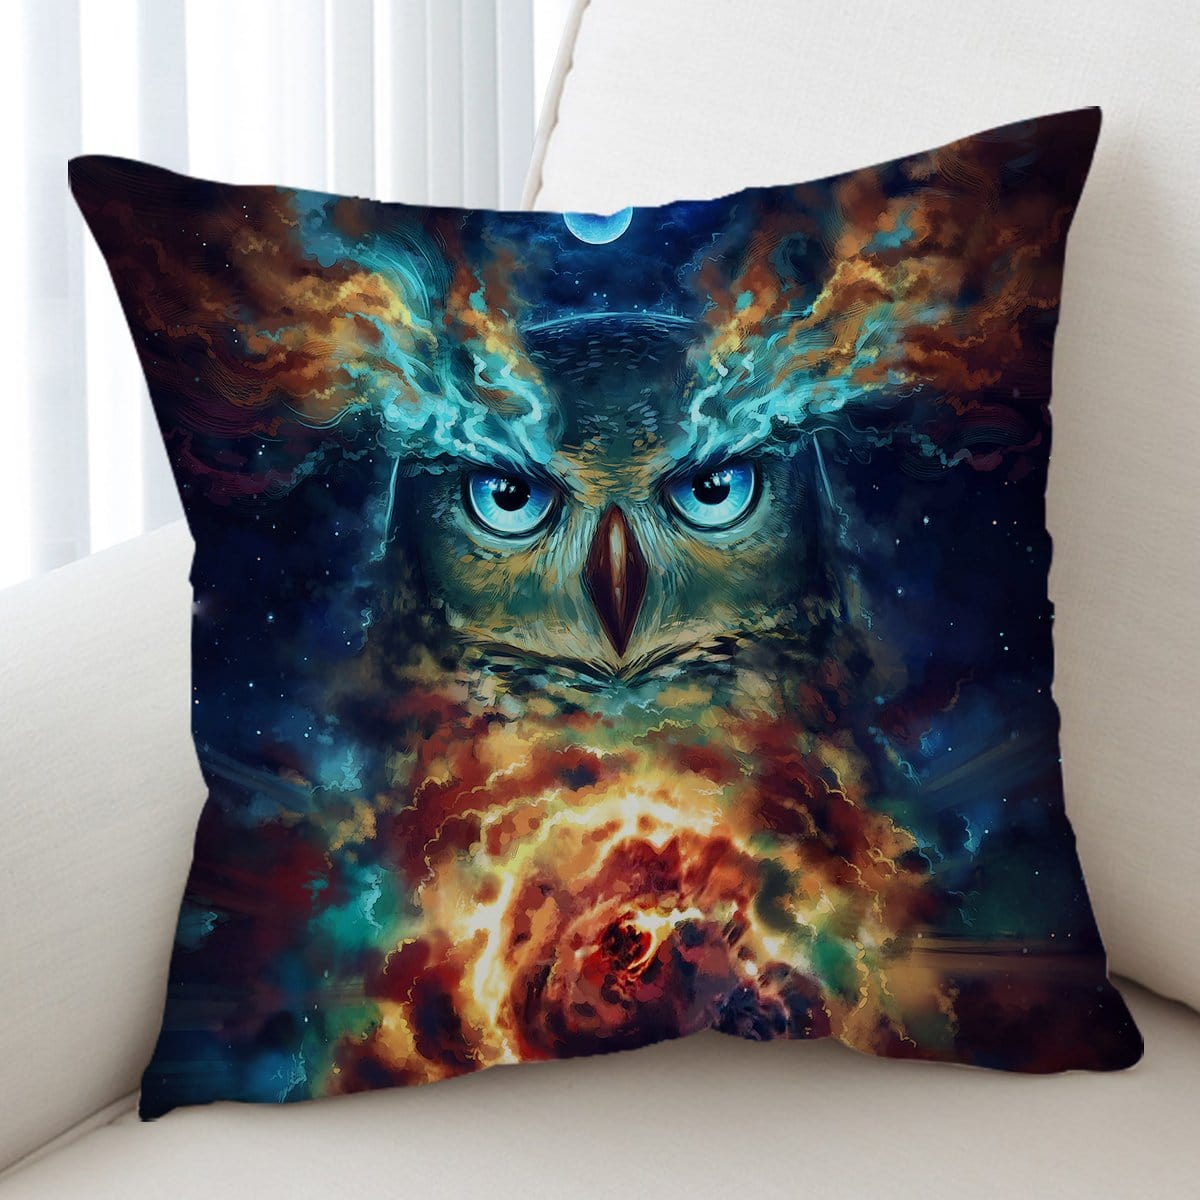 Night Nebowla Cushion Cover